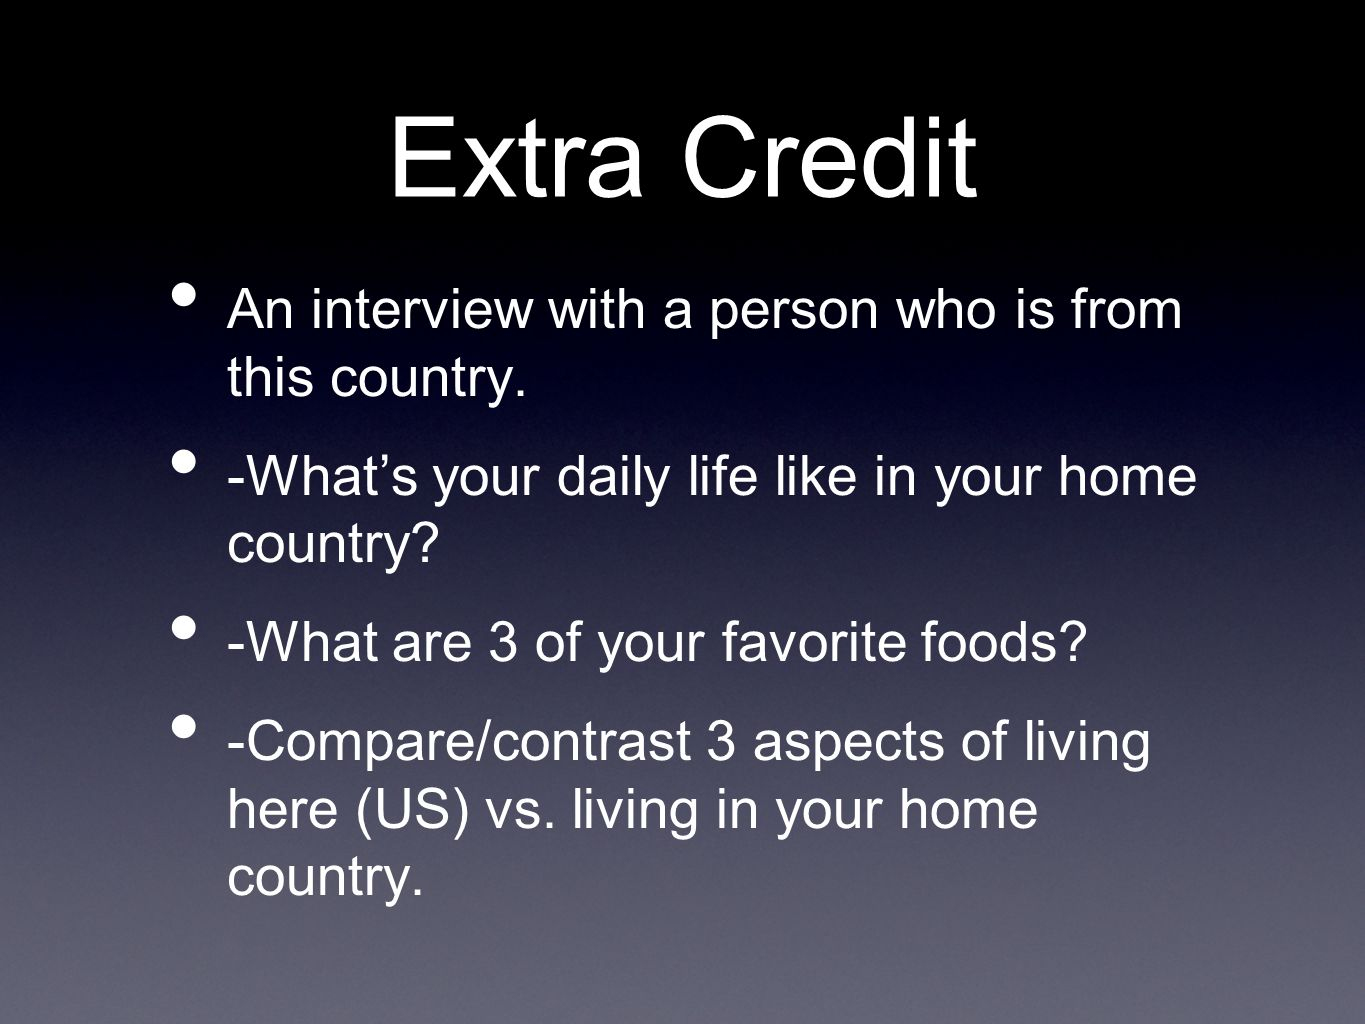 Extra Credit An interview with a person who is from this country.